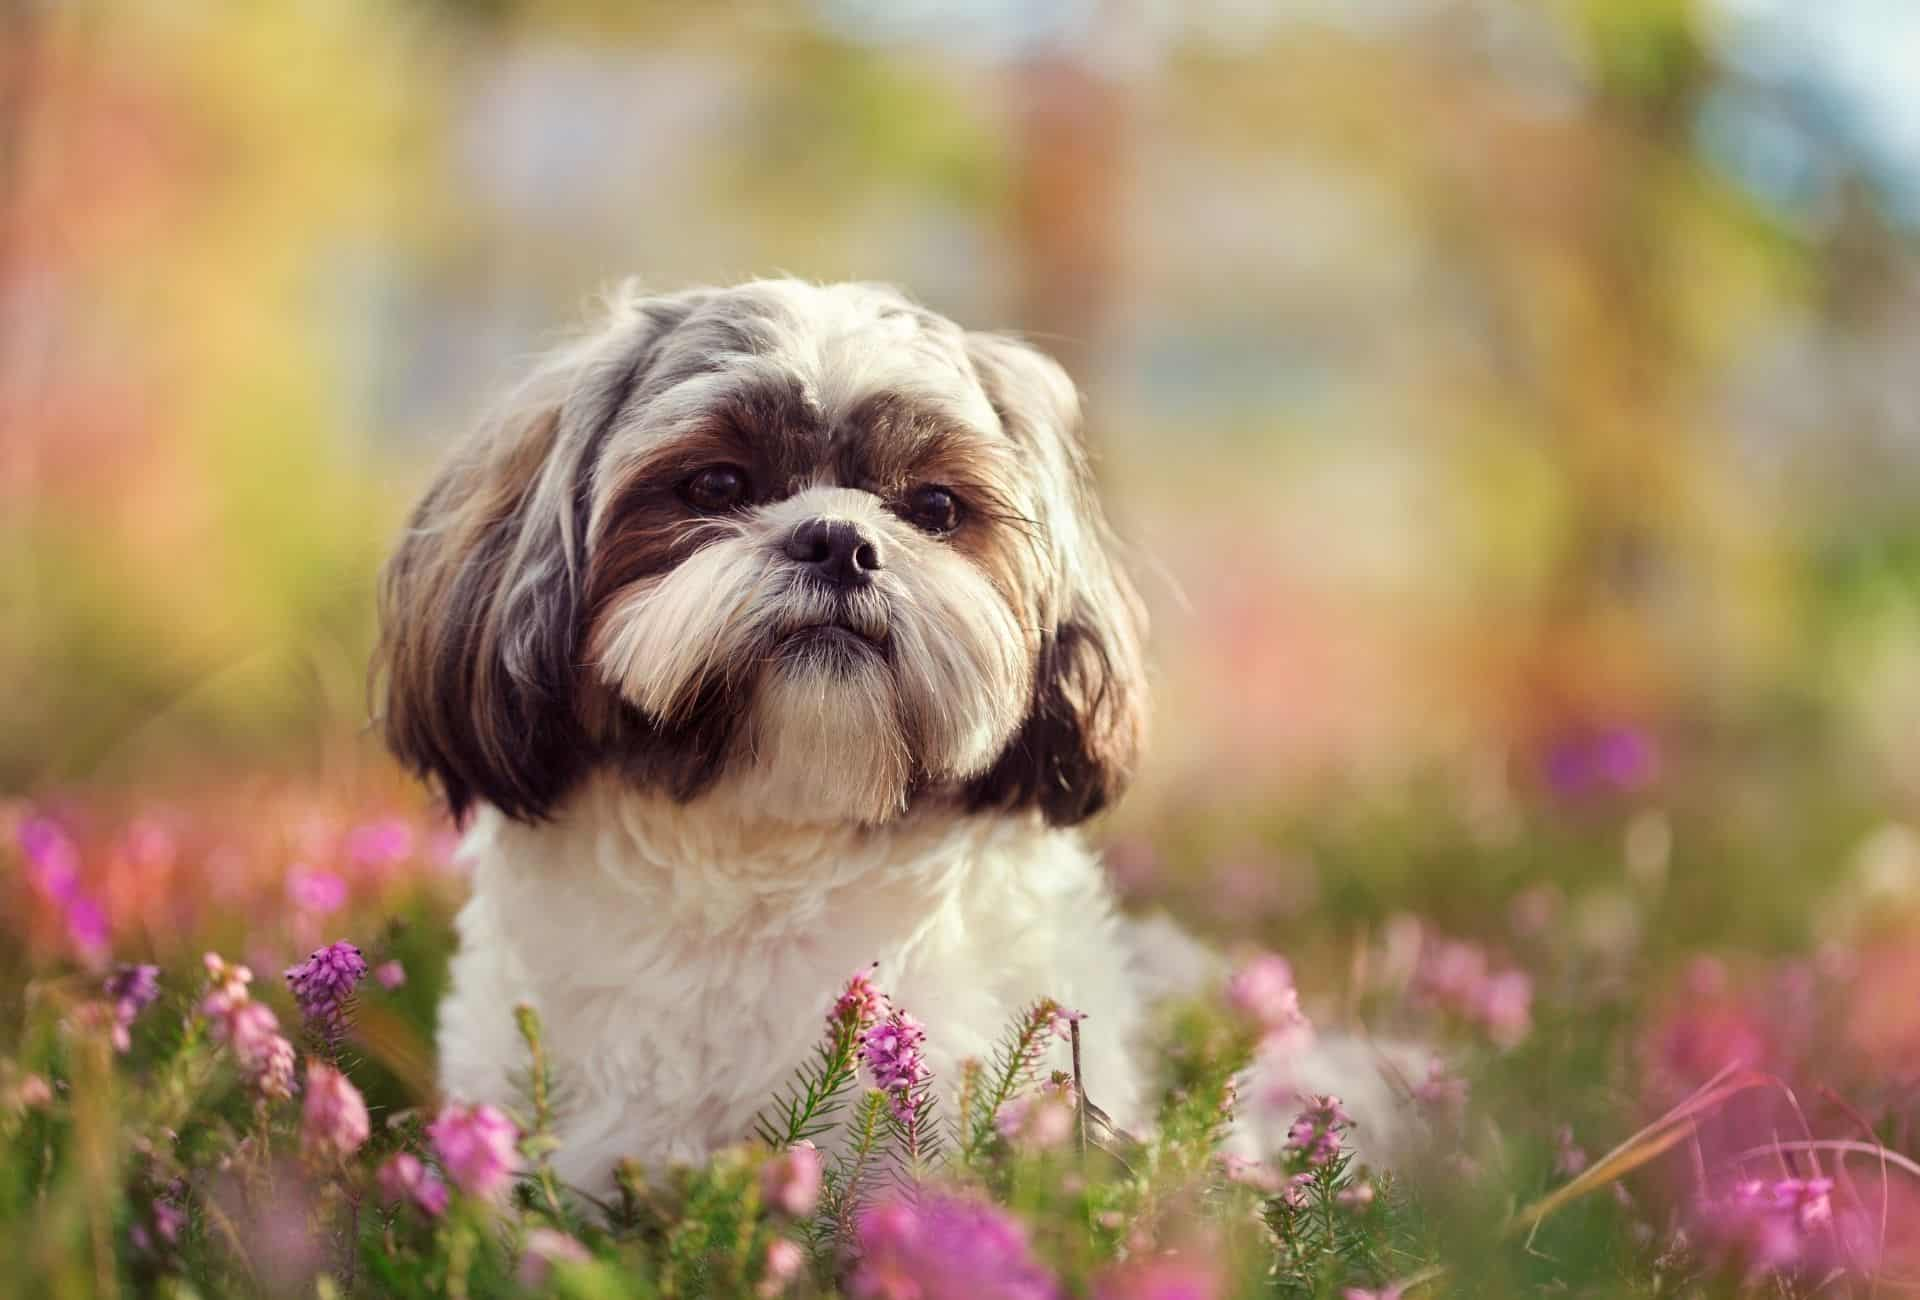 Curly Shih Tzu among blossoming flowers.